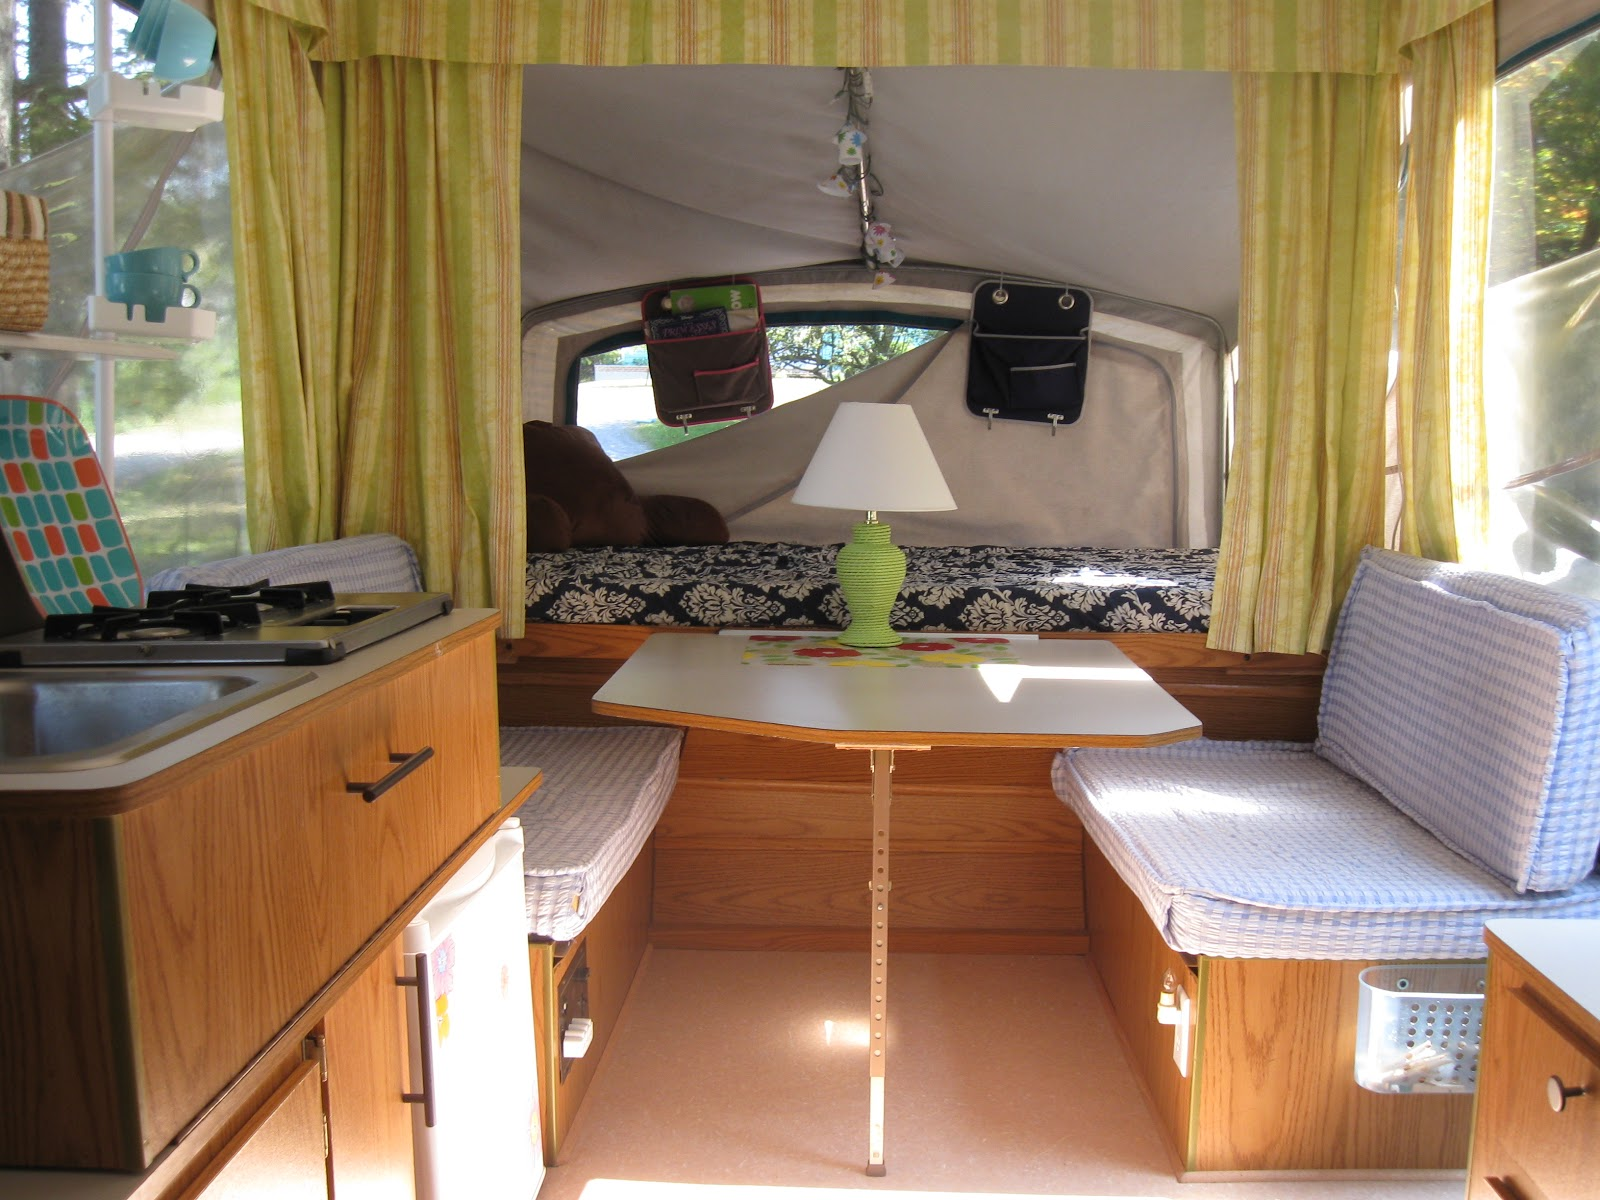 This house we call home camper remodel for Design caravan renovation ideas home